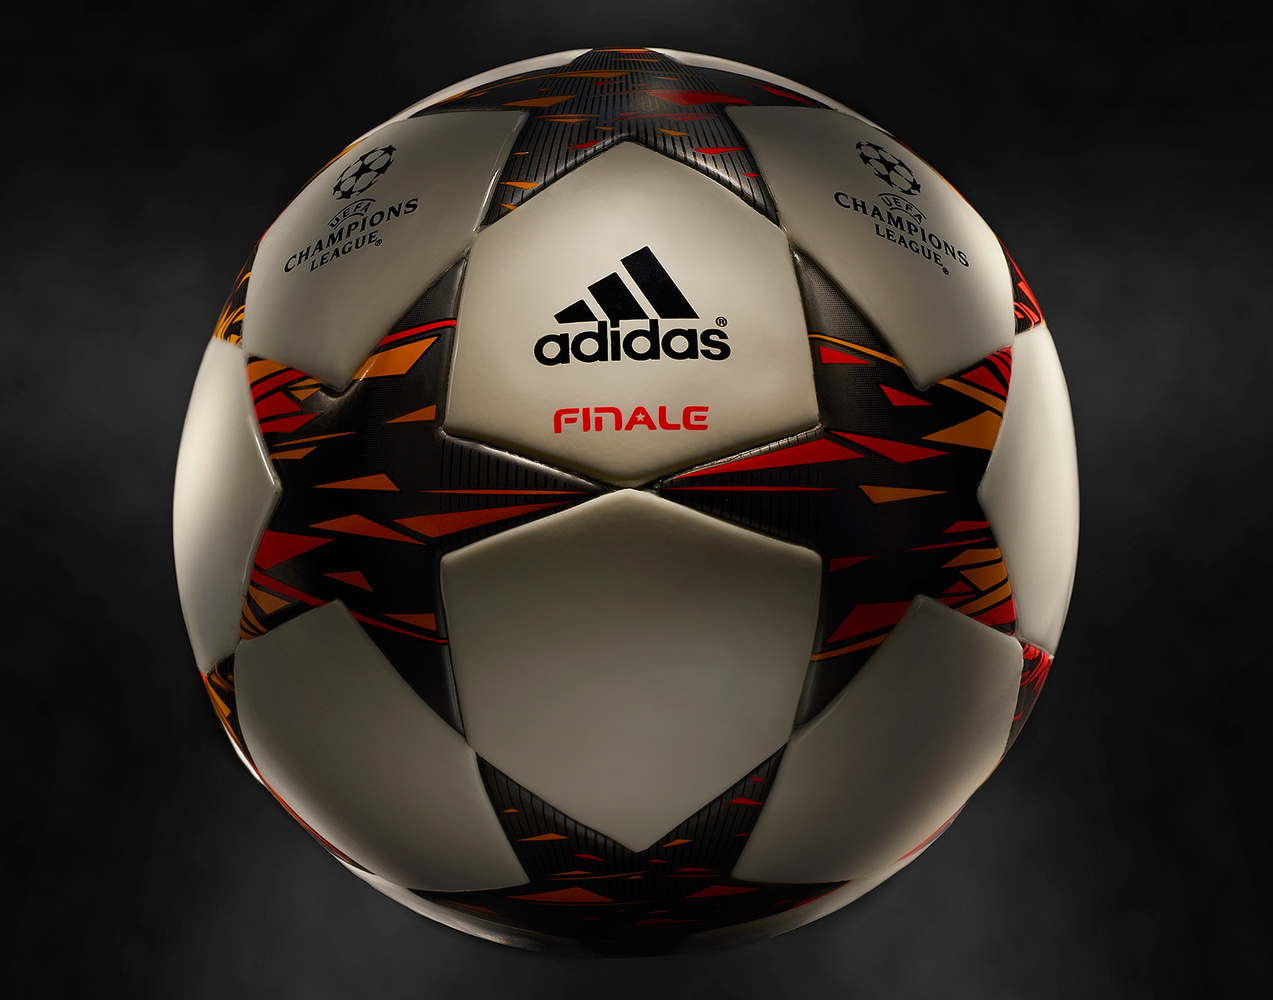 product shot of an adidas champions league soccer ball photo by brian kaldorf by Brian Kaldorf